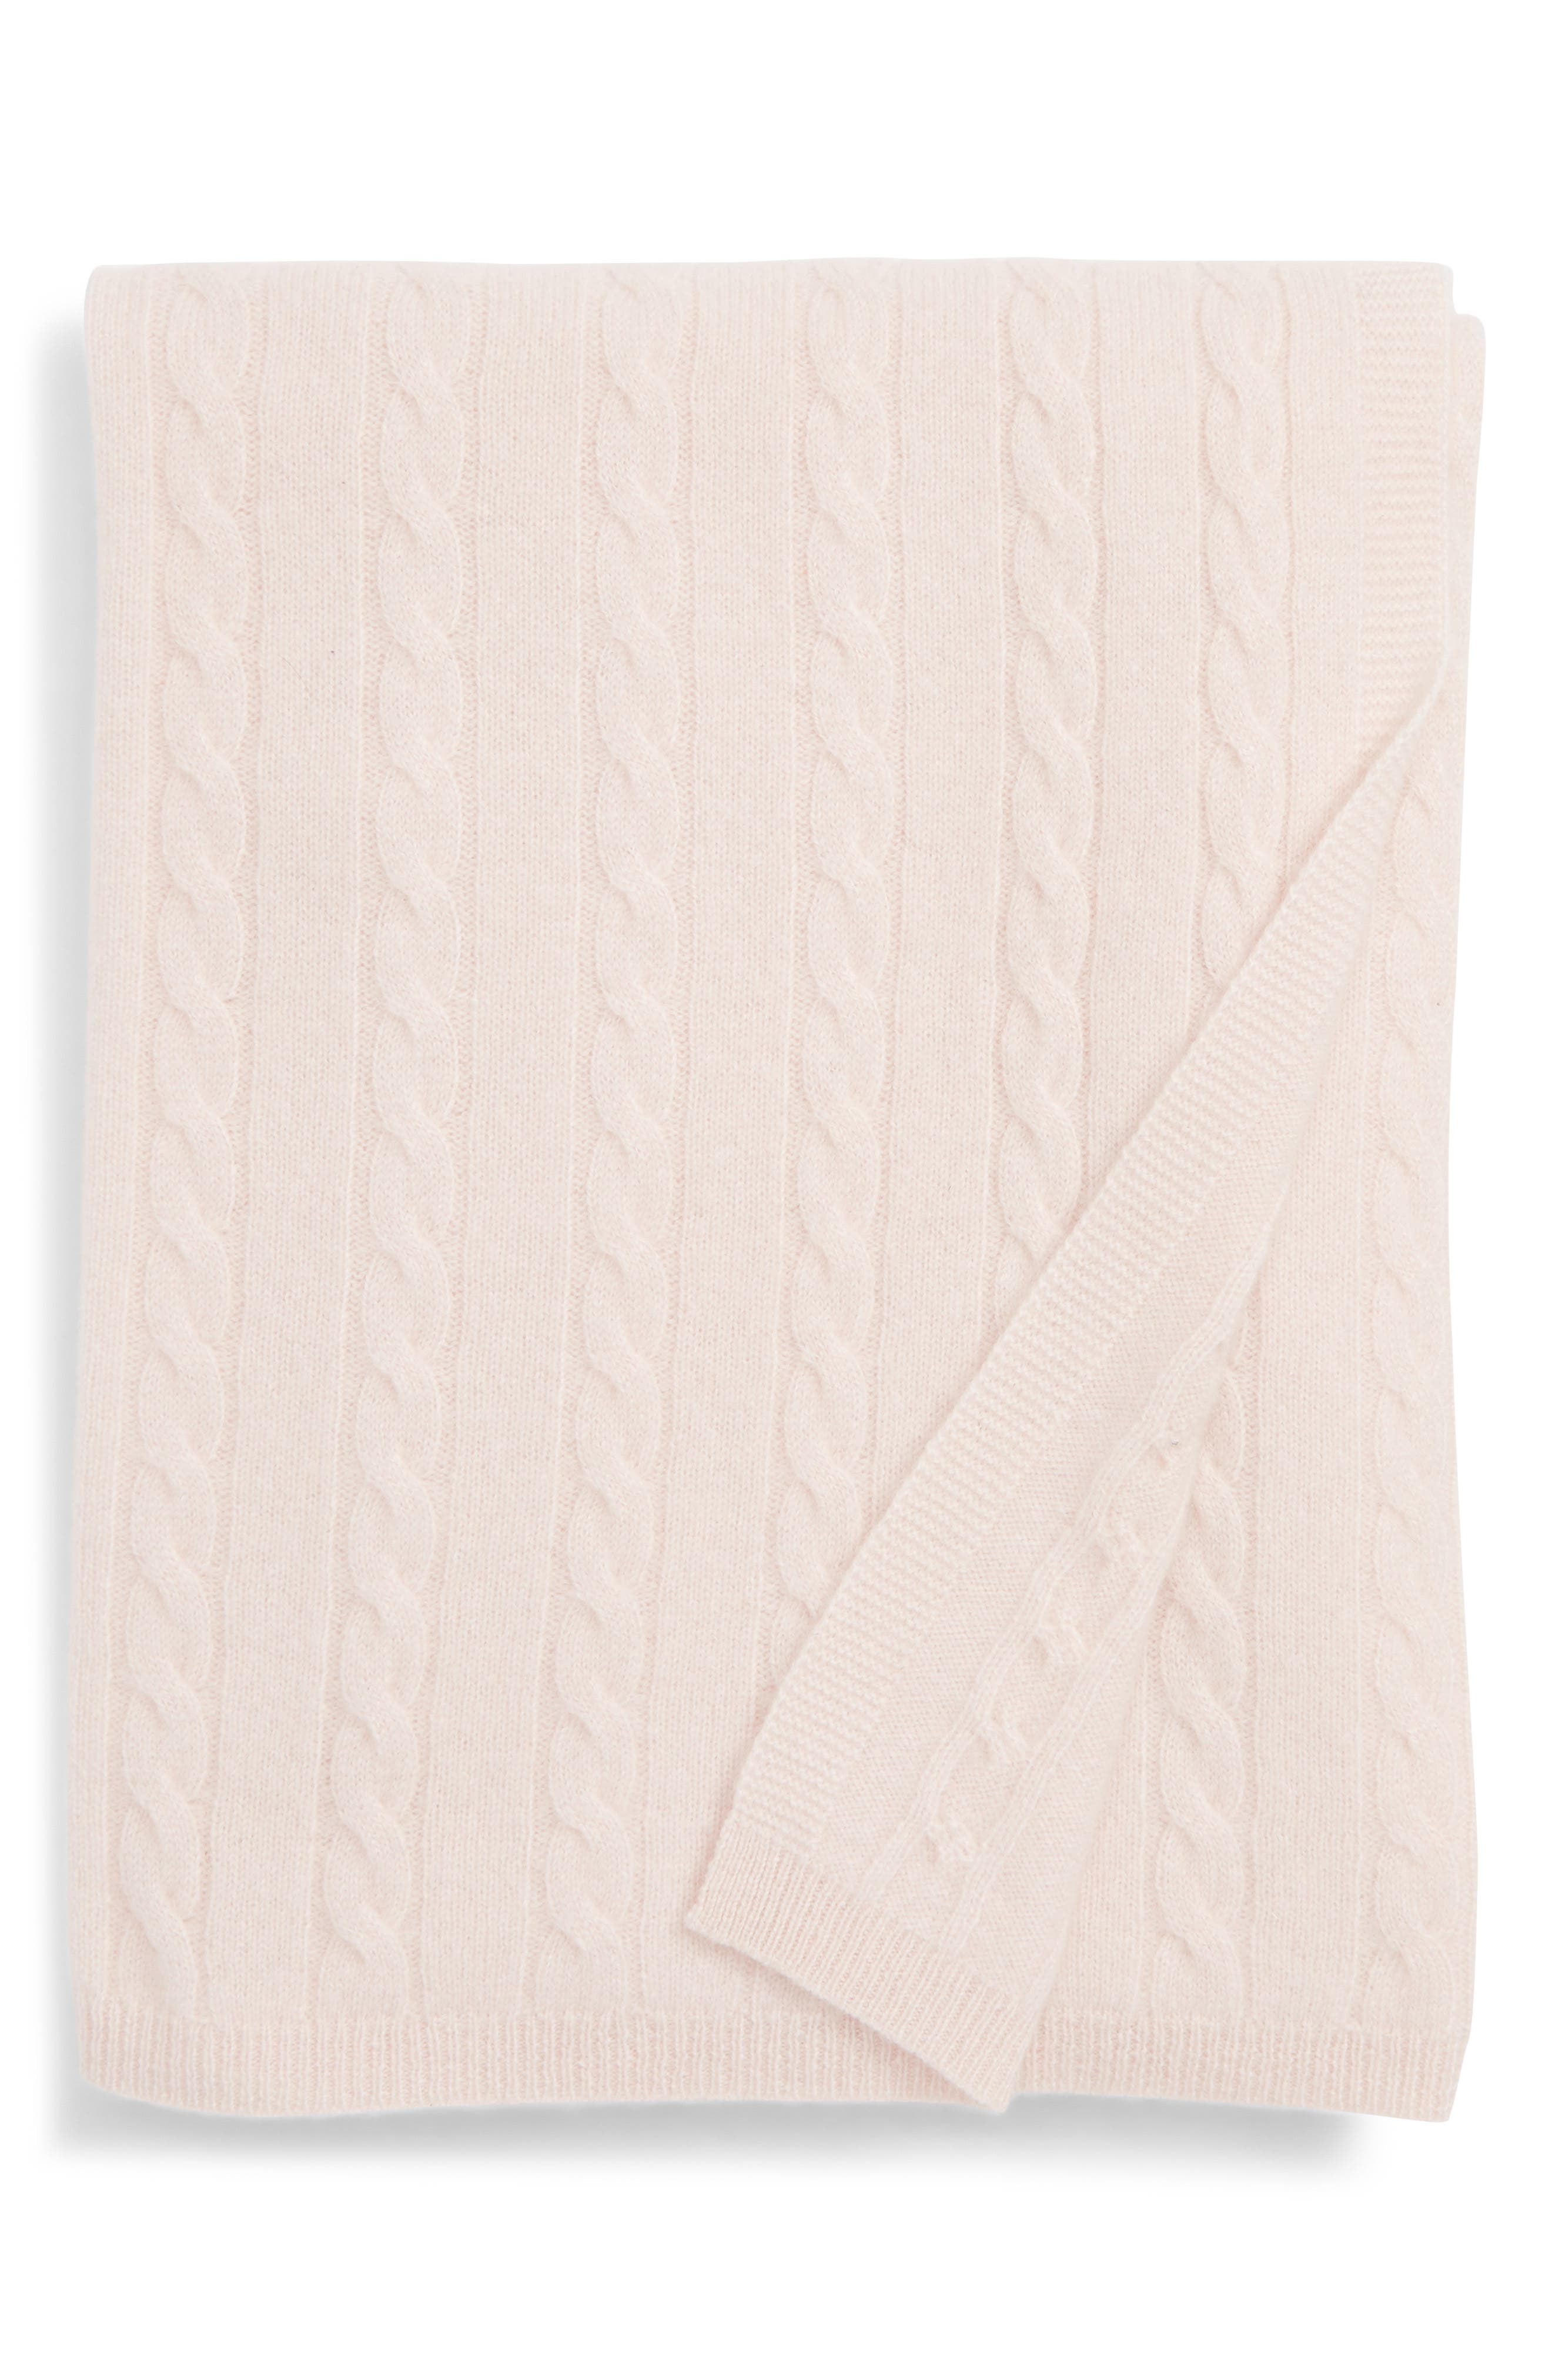 Cashmere Cable Knit Blanket,                         Main,                         color, PINK DREAM